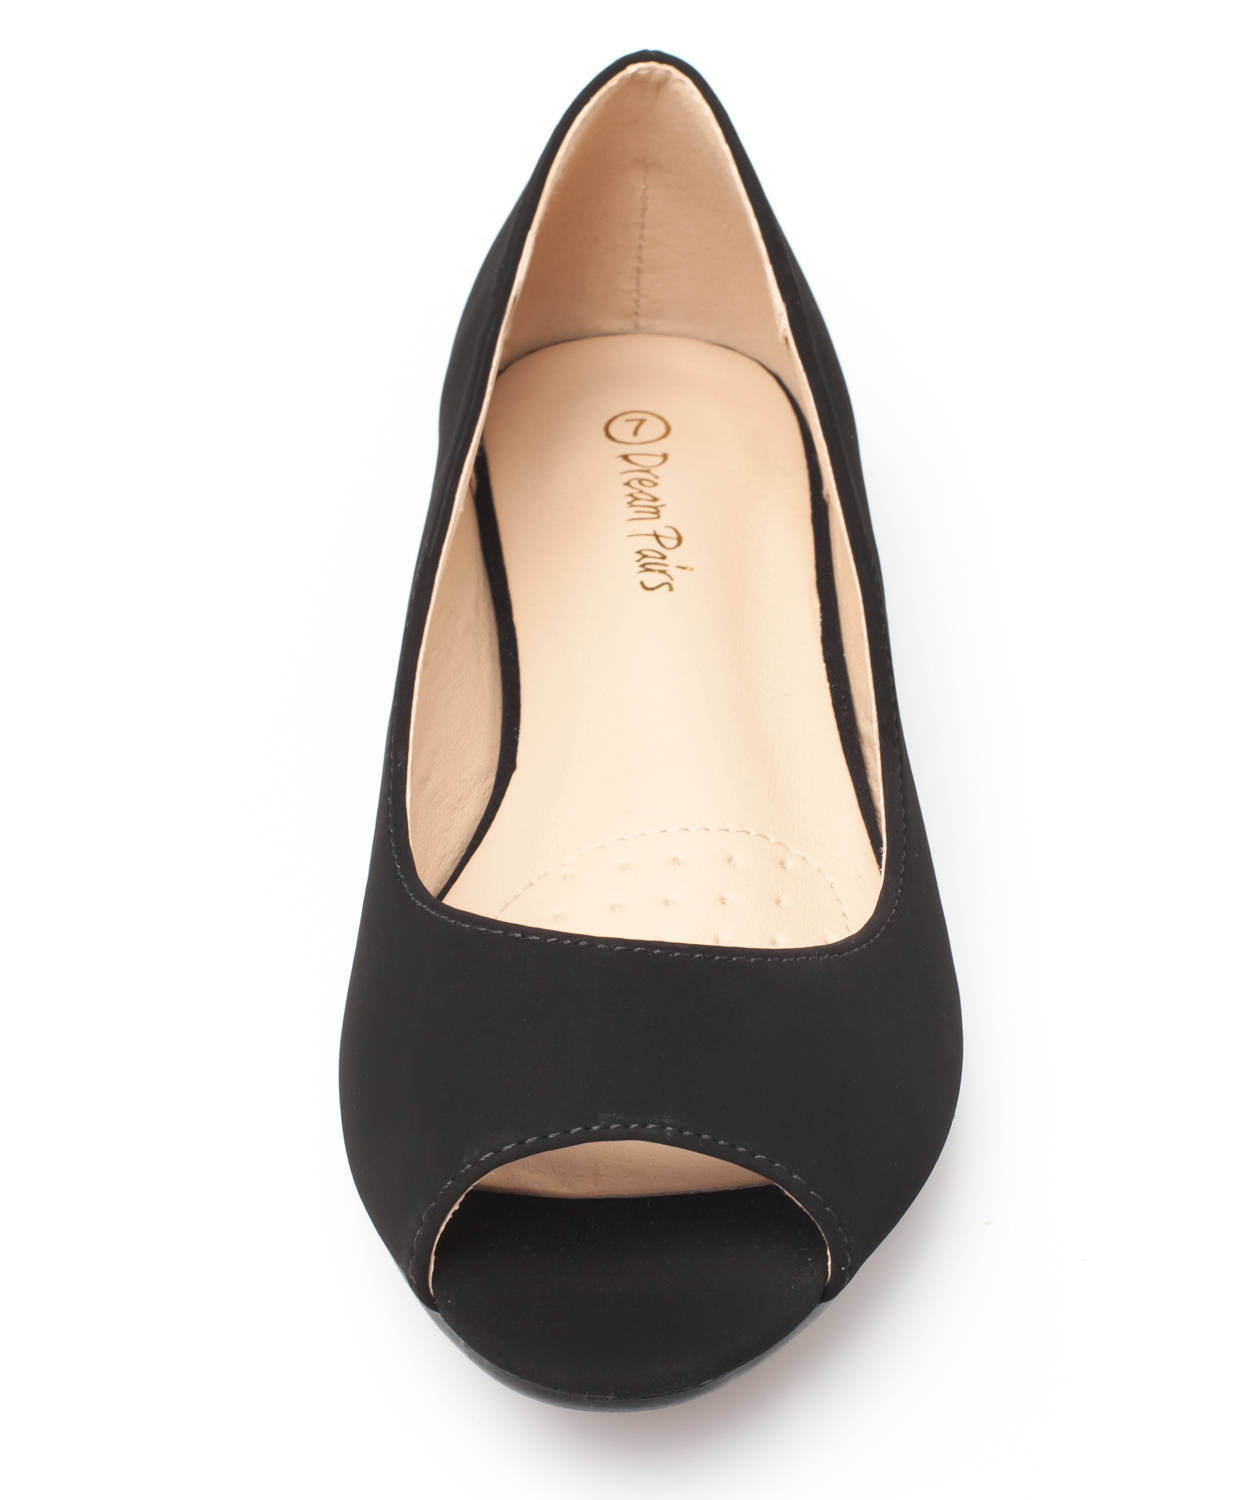 DREAM-PAIRS-Womens-Ballet-Flats-Low-Heel-Open-Toe-Slip-On-Dress-Flat-Shoes thumbnail 53